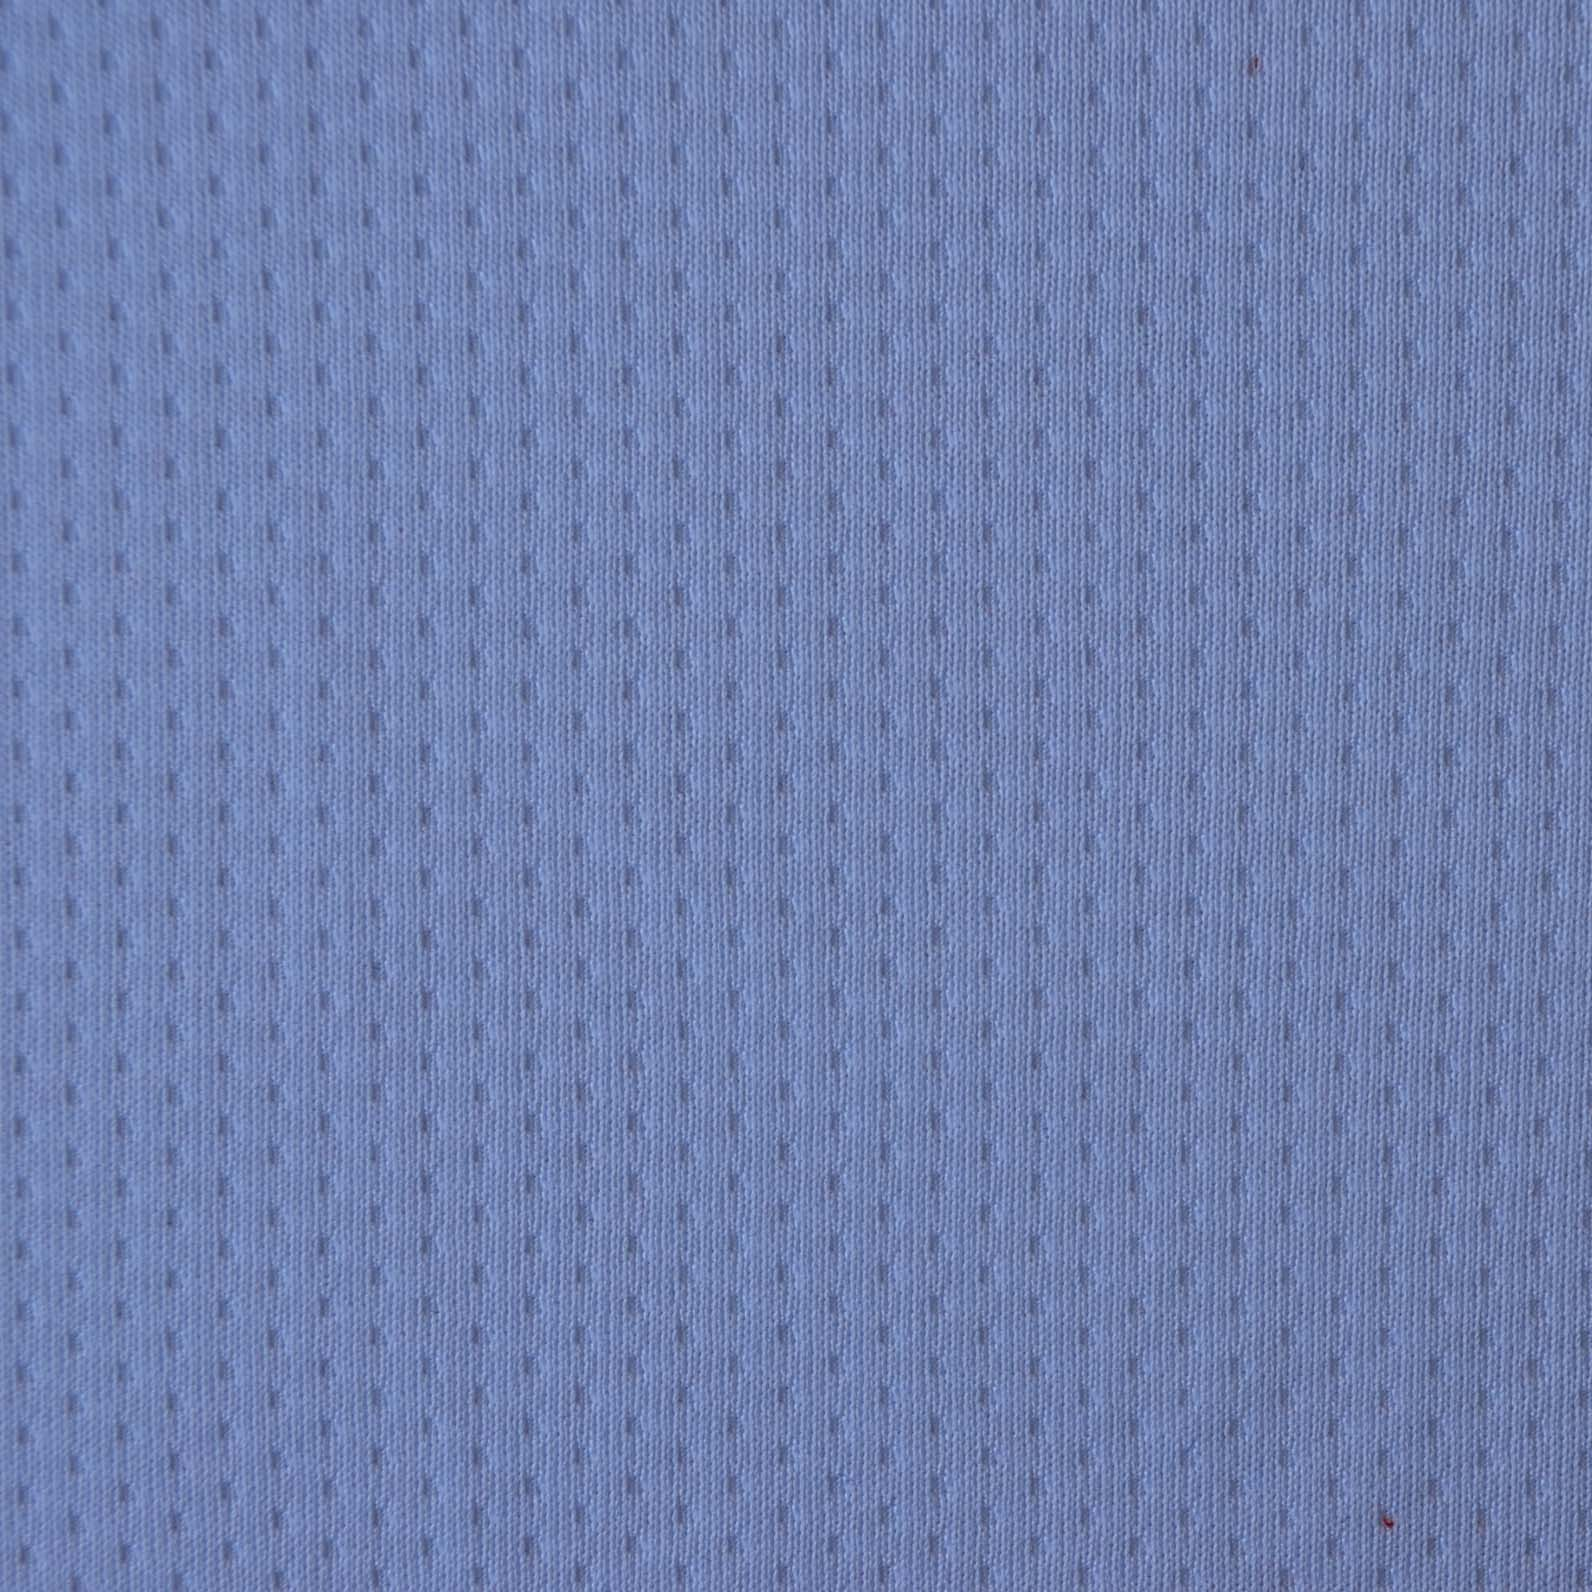 Polyester single jersey knit fabric for sportswear